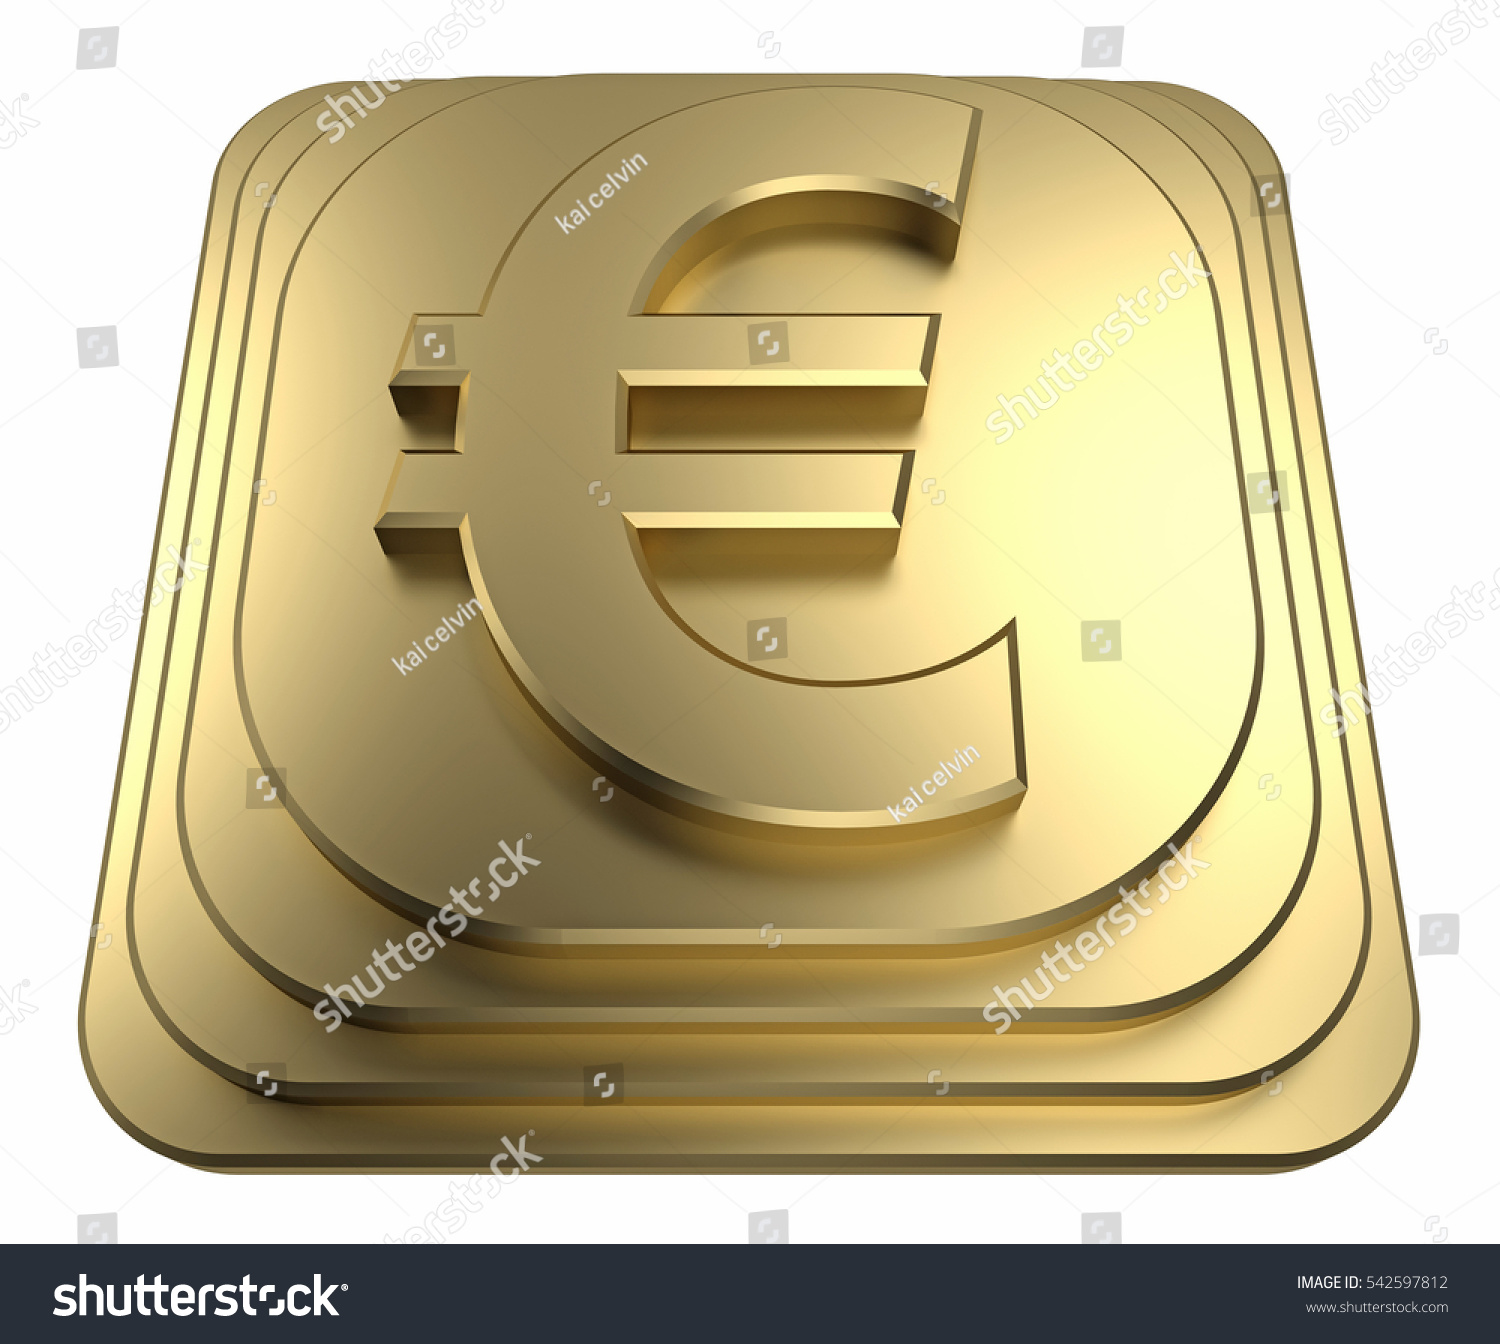 With golden key 3d rendering plan concept with golden key 3d rendering - Gold Euro Sign On A Pedestal 3d Rendering